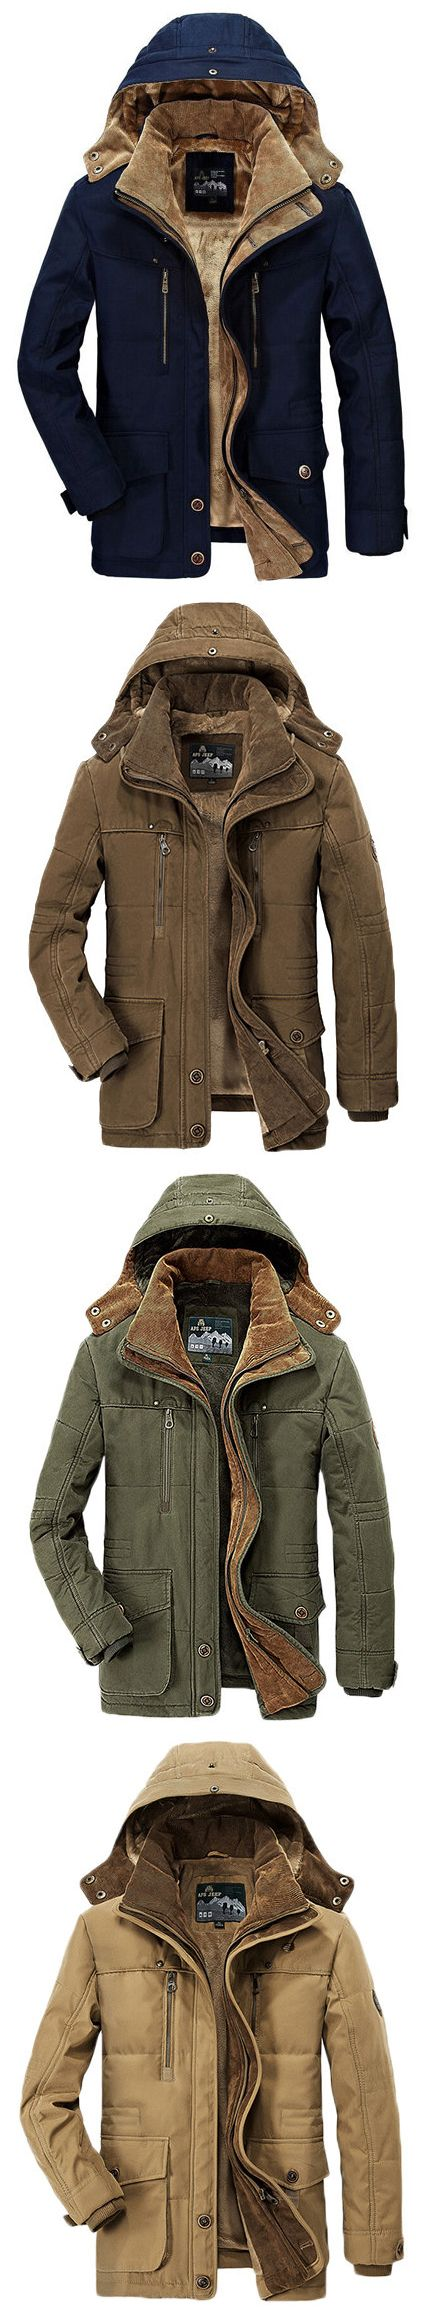 AFSJEEP Winter Thicken Warm Multi Pockets Solid Color Detachable Hood Jacket for Men